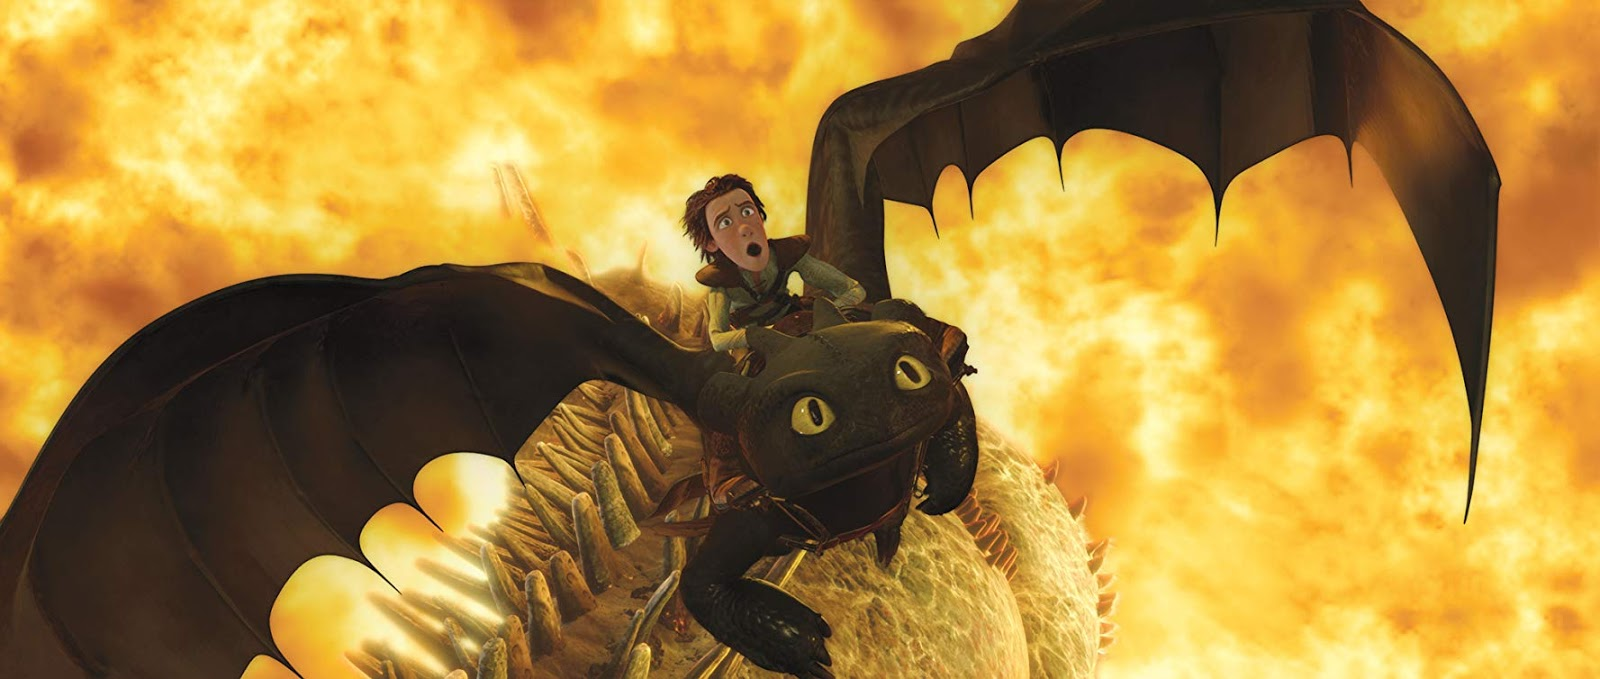 how-to-train-your-dragon-2010-movie-still-3.jpg